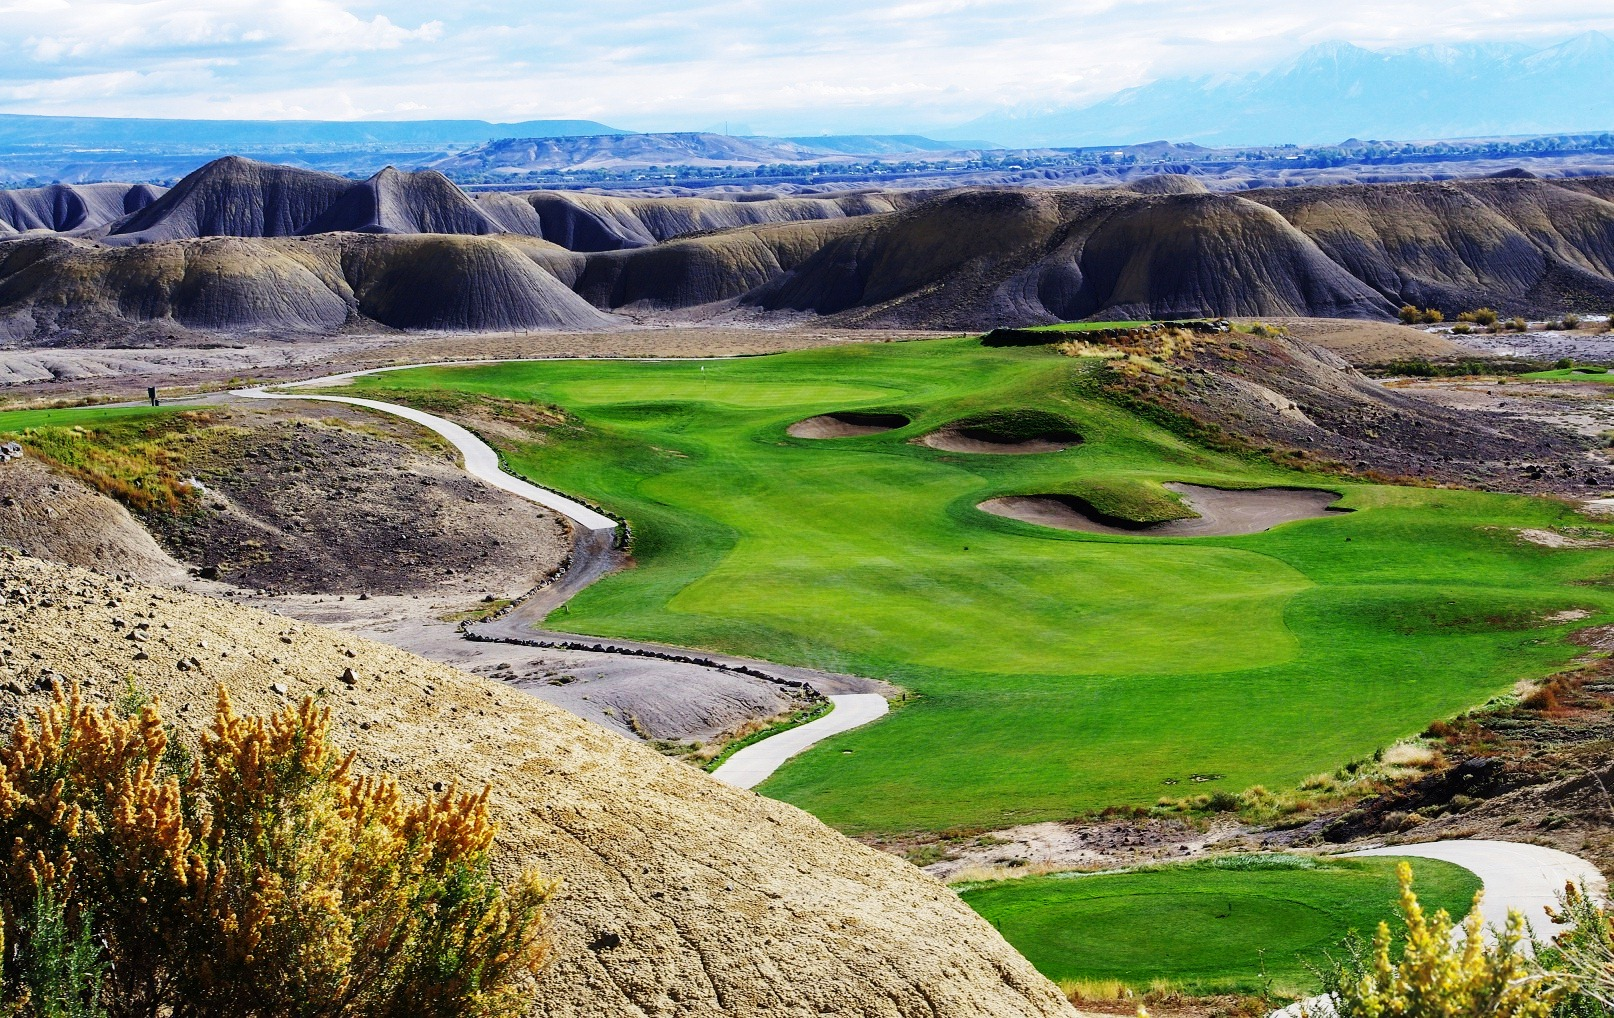 Devil's Thumb Golf Course in Delta County ranks highly